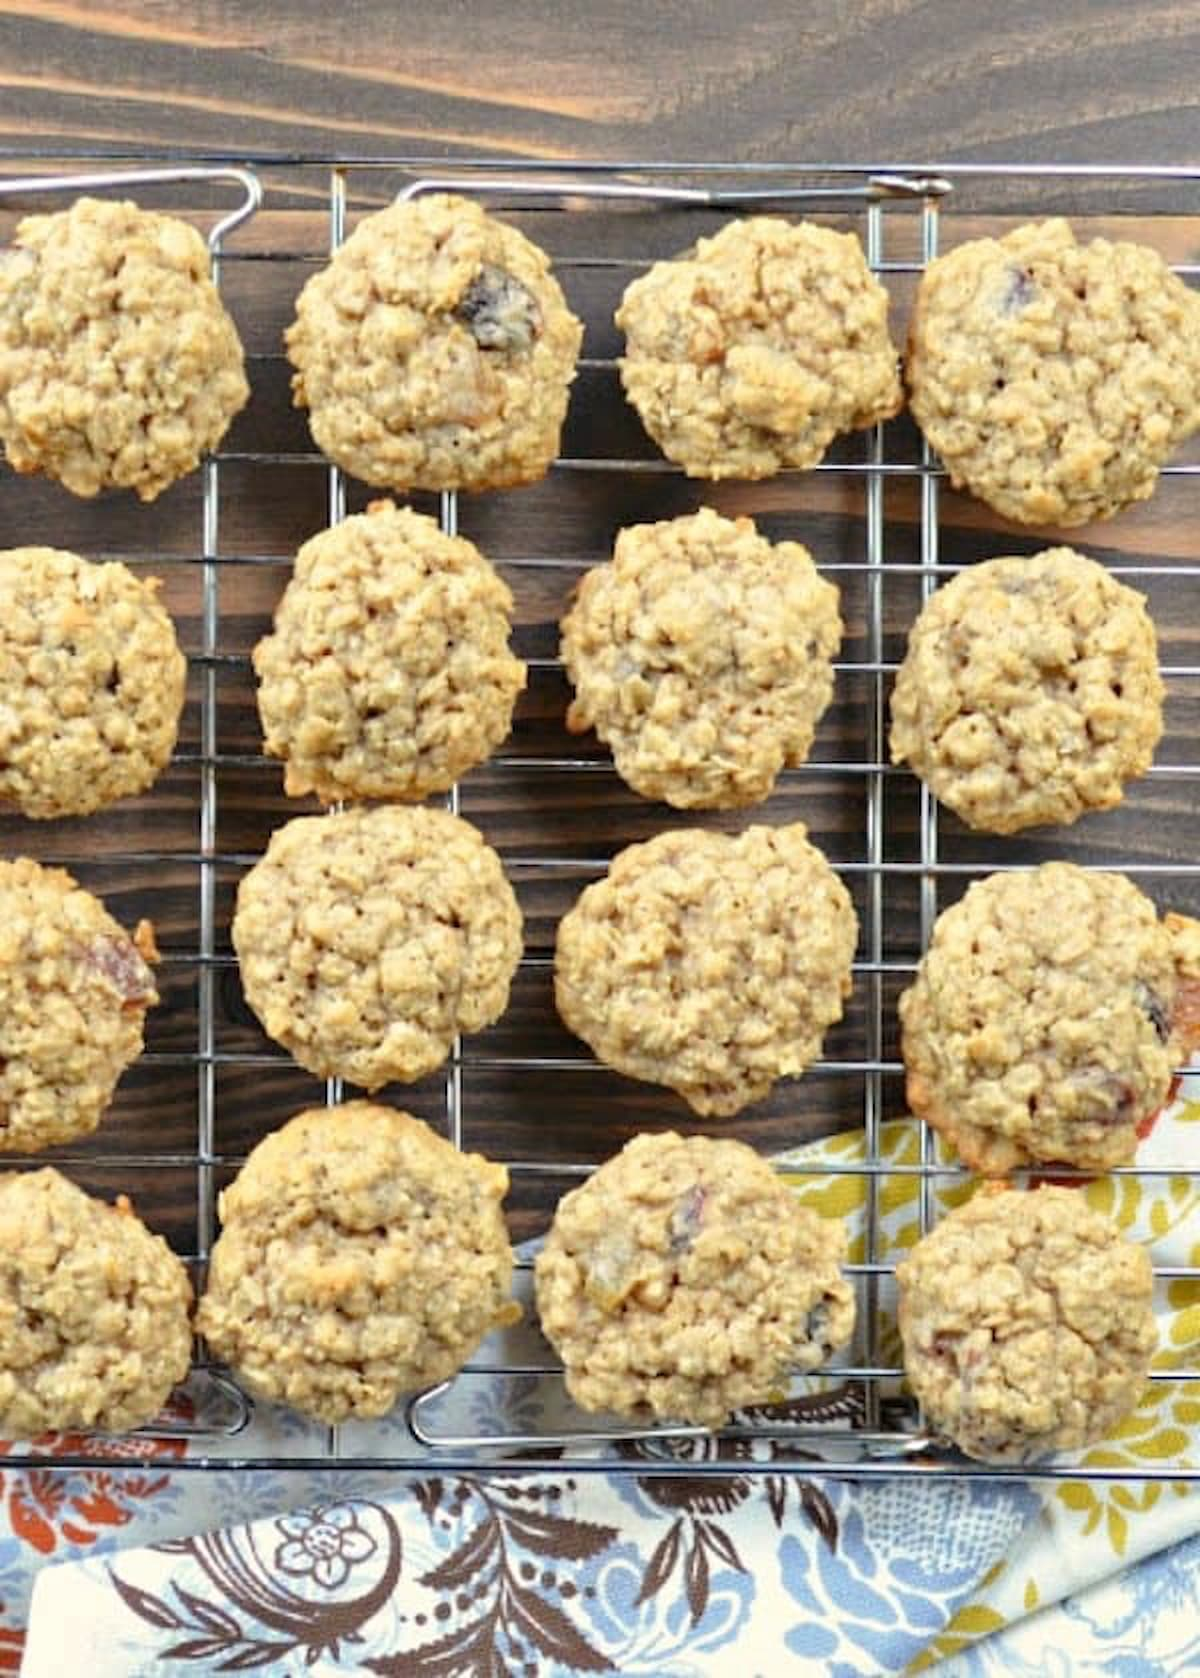 Chewy Soft Oatmeal Raisin Cookies are a family favorite recipe from Serena Bakes Simply from Scratch.